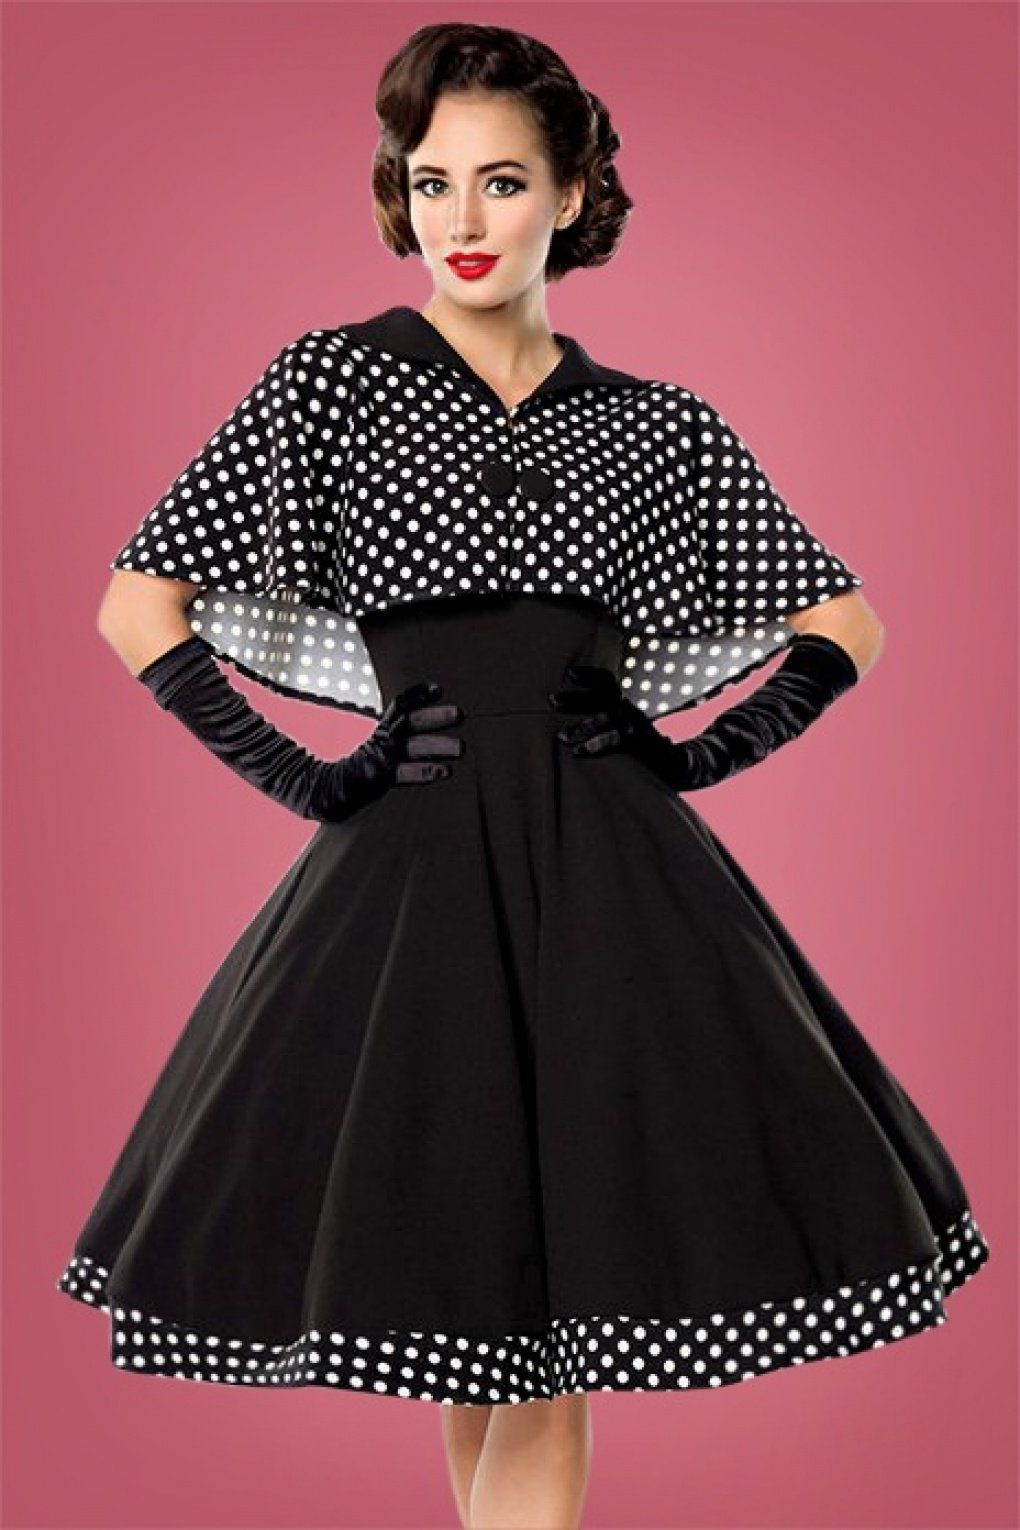 Vintage Style Dresses 50s Lesly Polkadot Cape Swing Dress in Black £55.95  AT vintagedancer.com cae73d0b6e7d